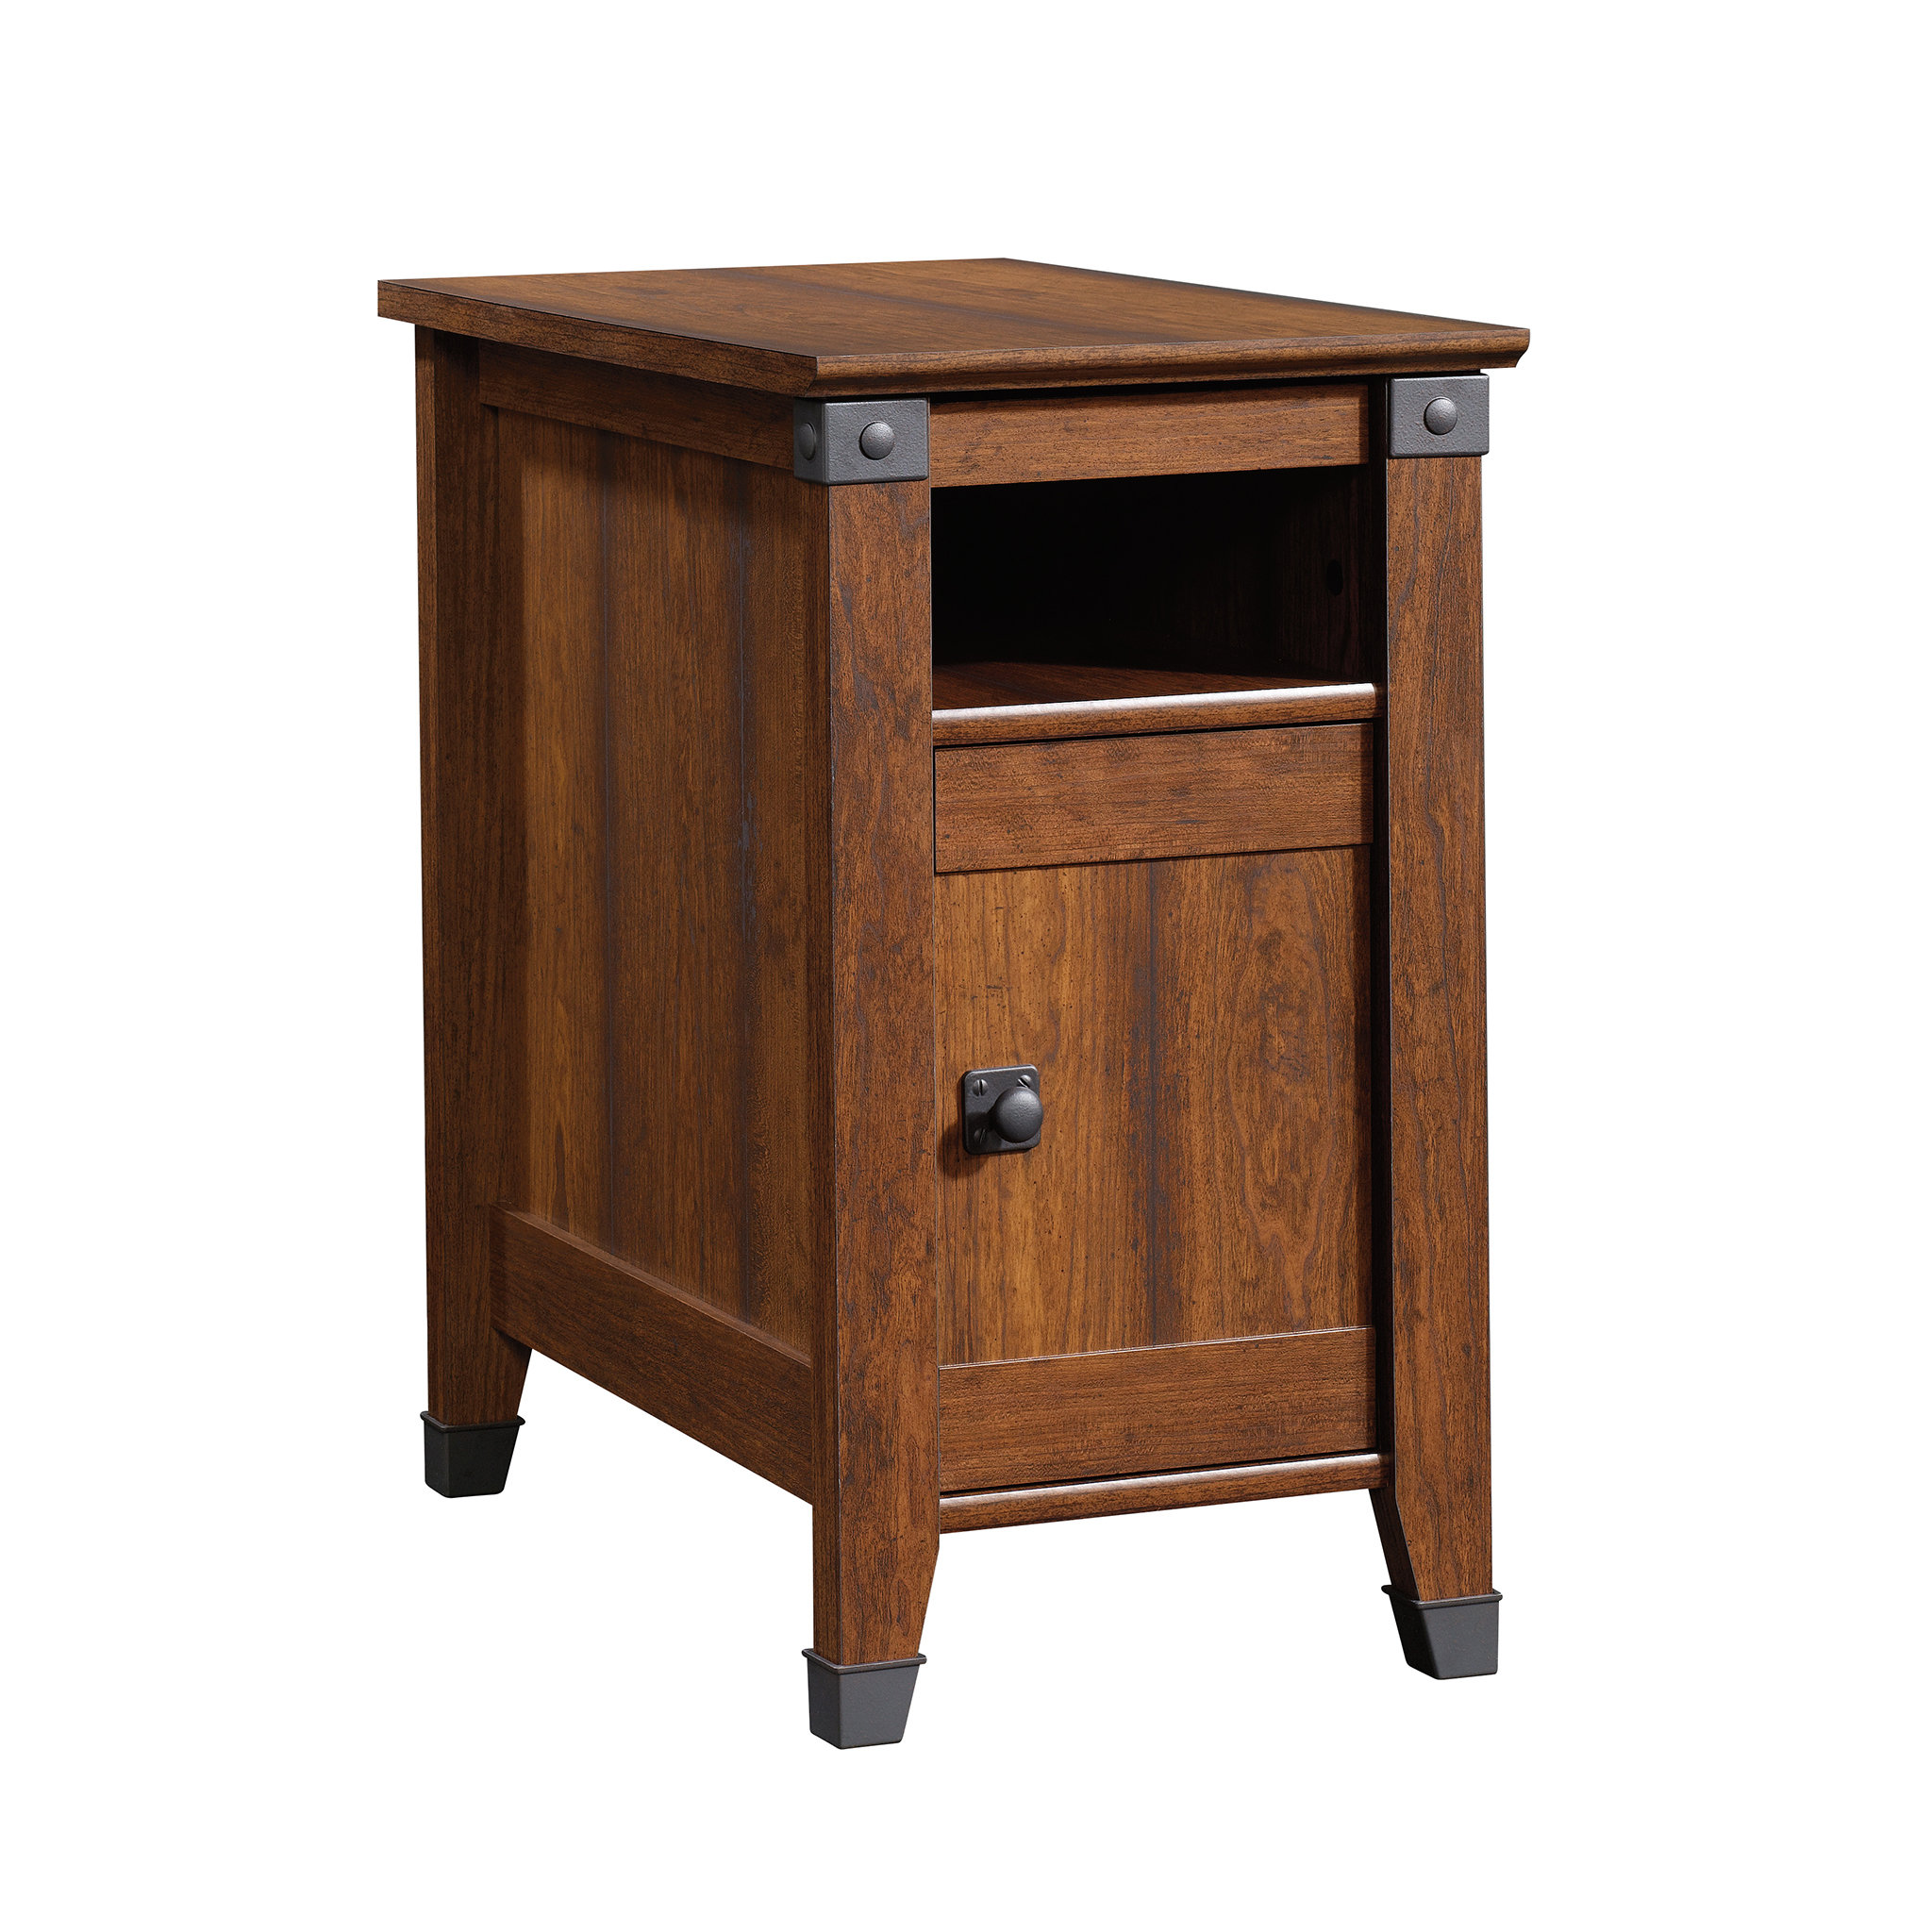 charlton home crosskennan end table with storage birch lane leach twisted mango wood accent quickview coffee oak safavieh inga gold small decorative chest drawers weber side